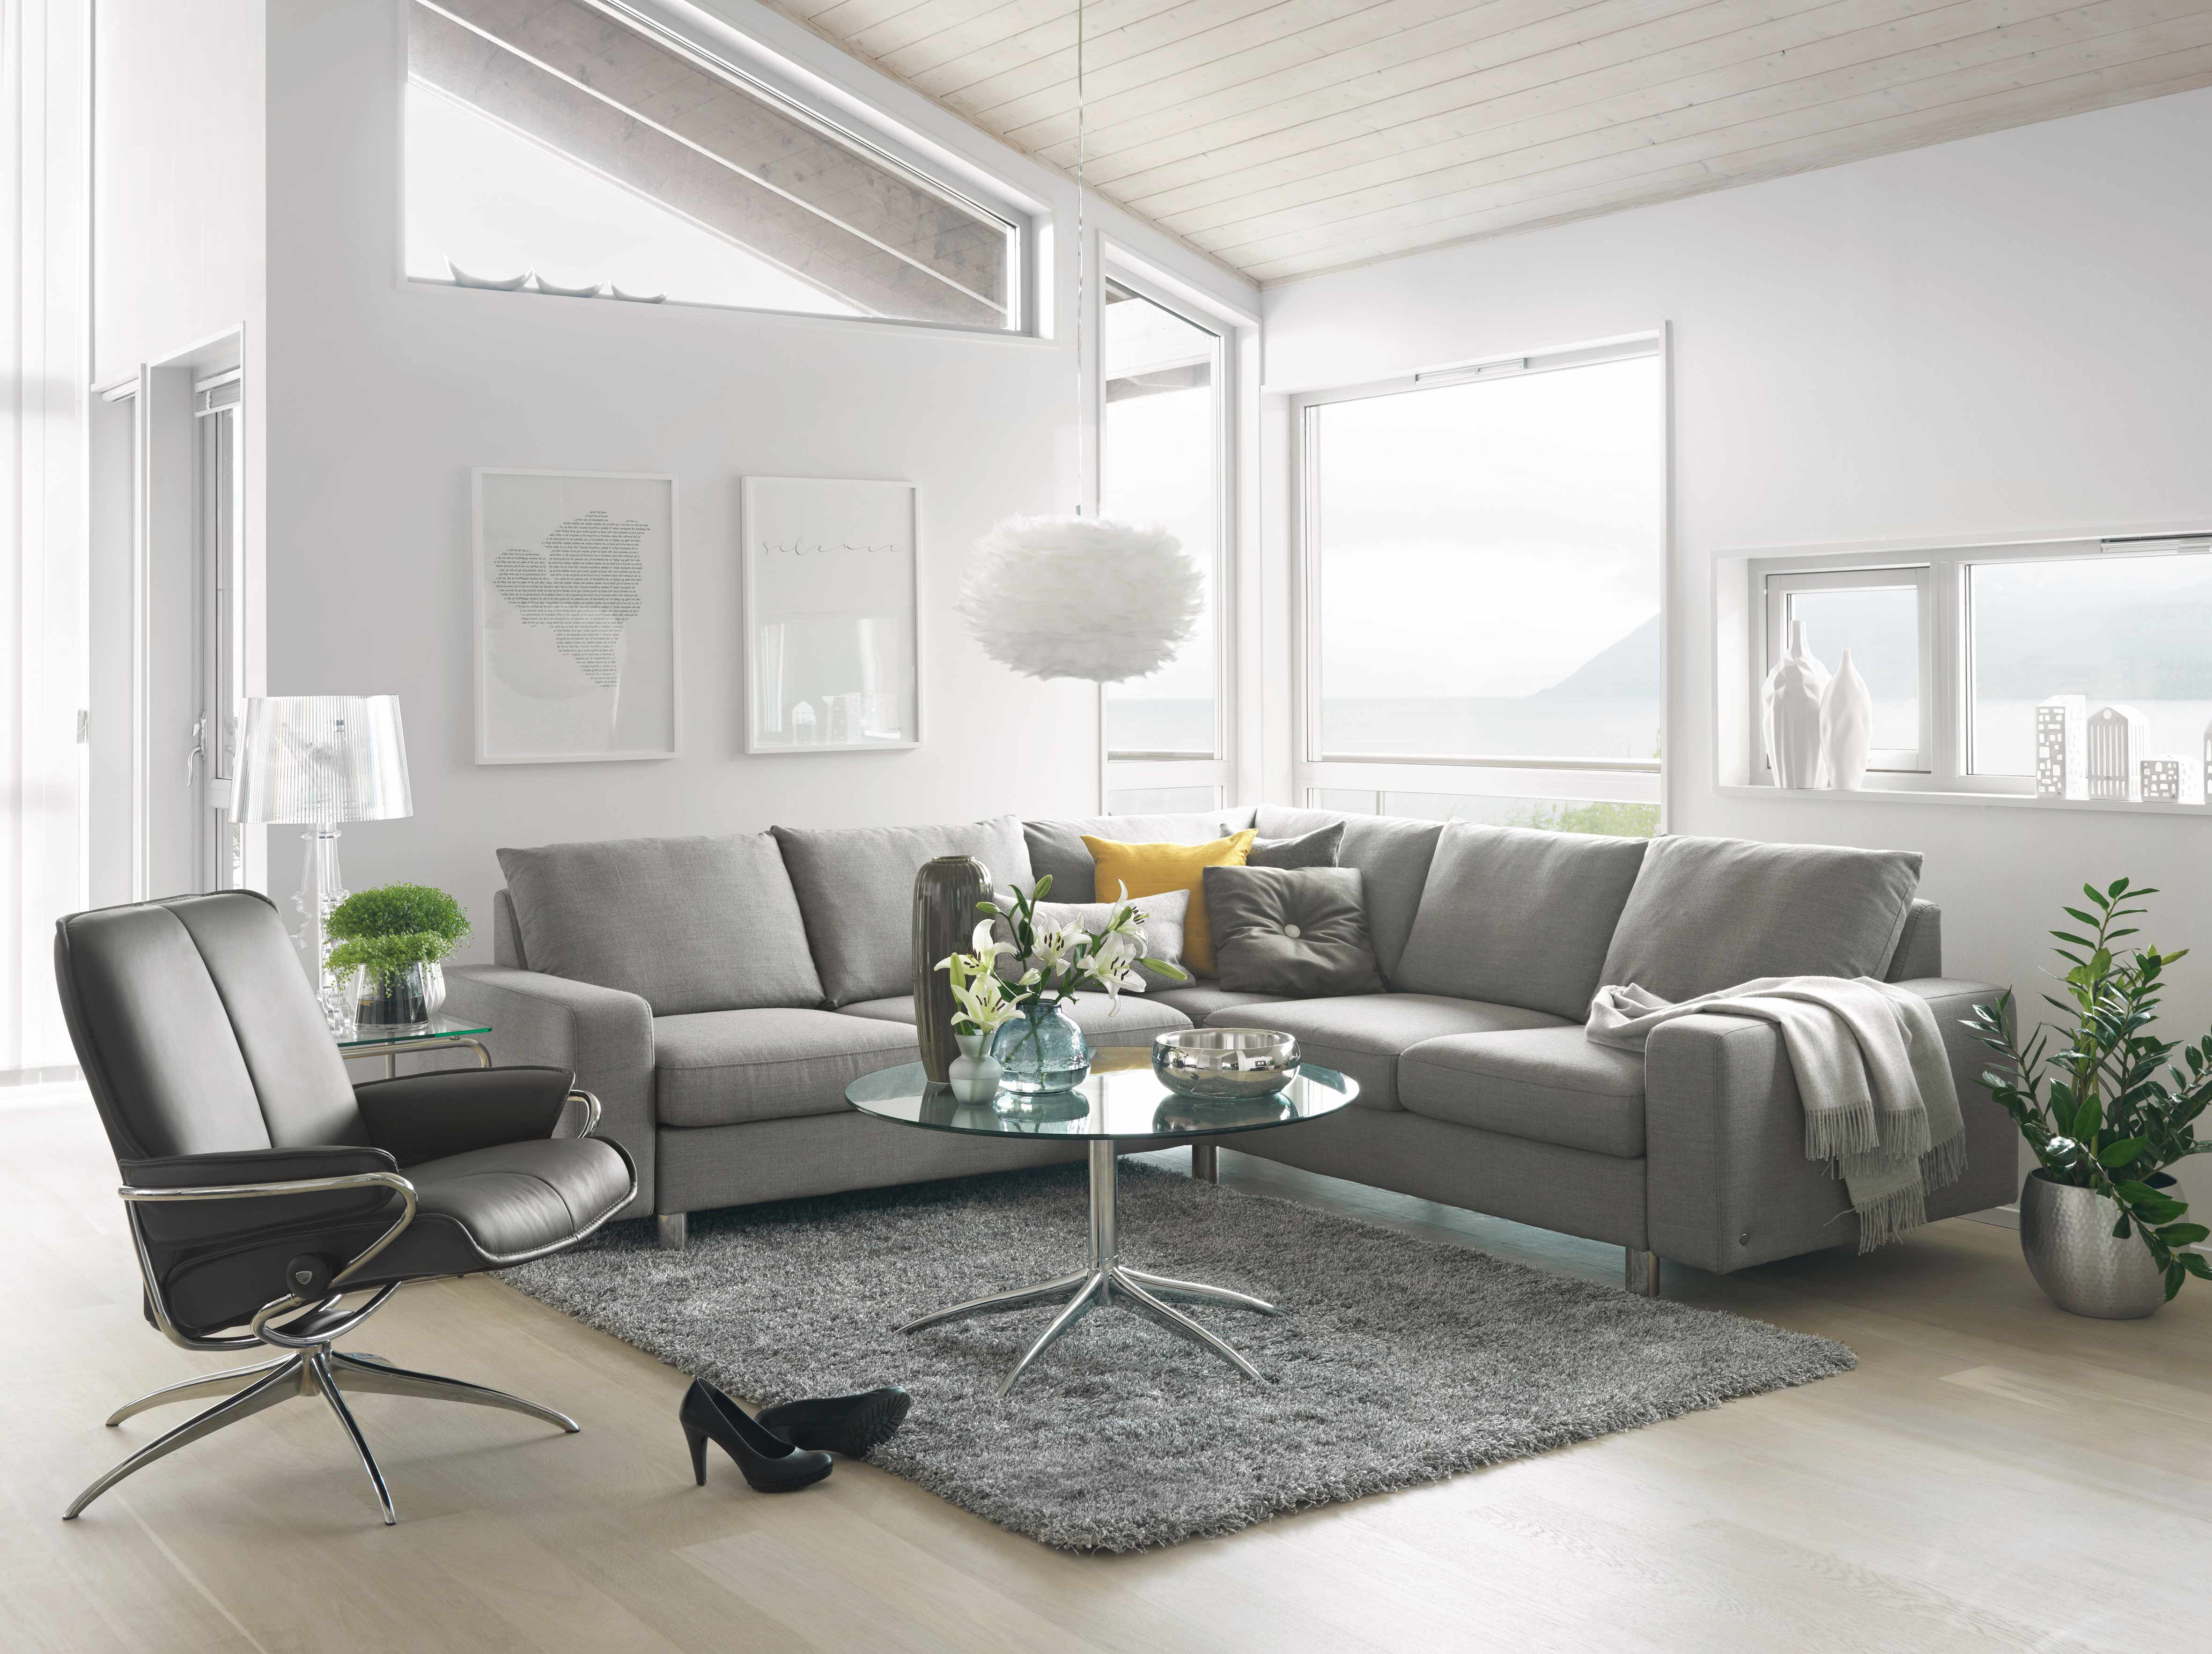 High Quality Ekornes Stressless E200 Sectional Sofa